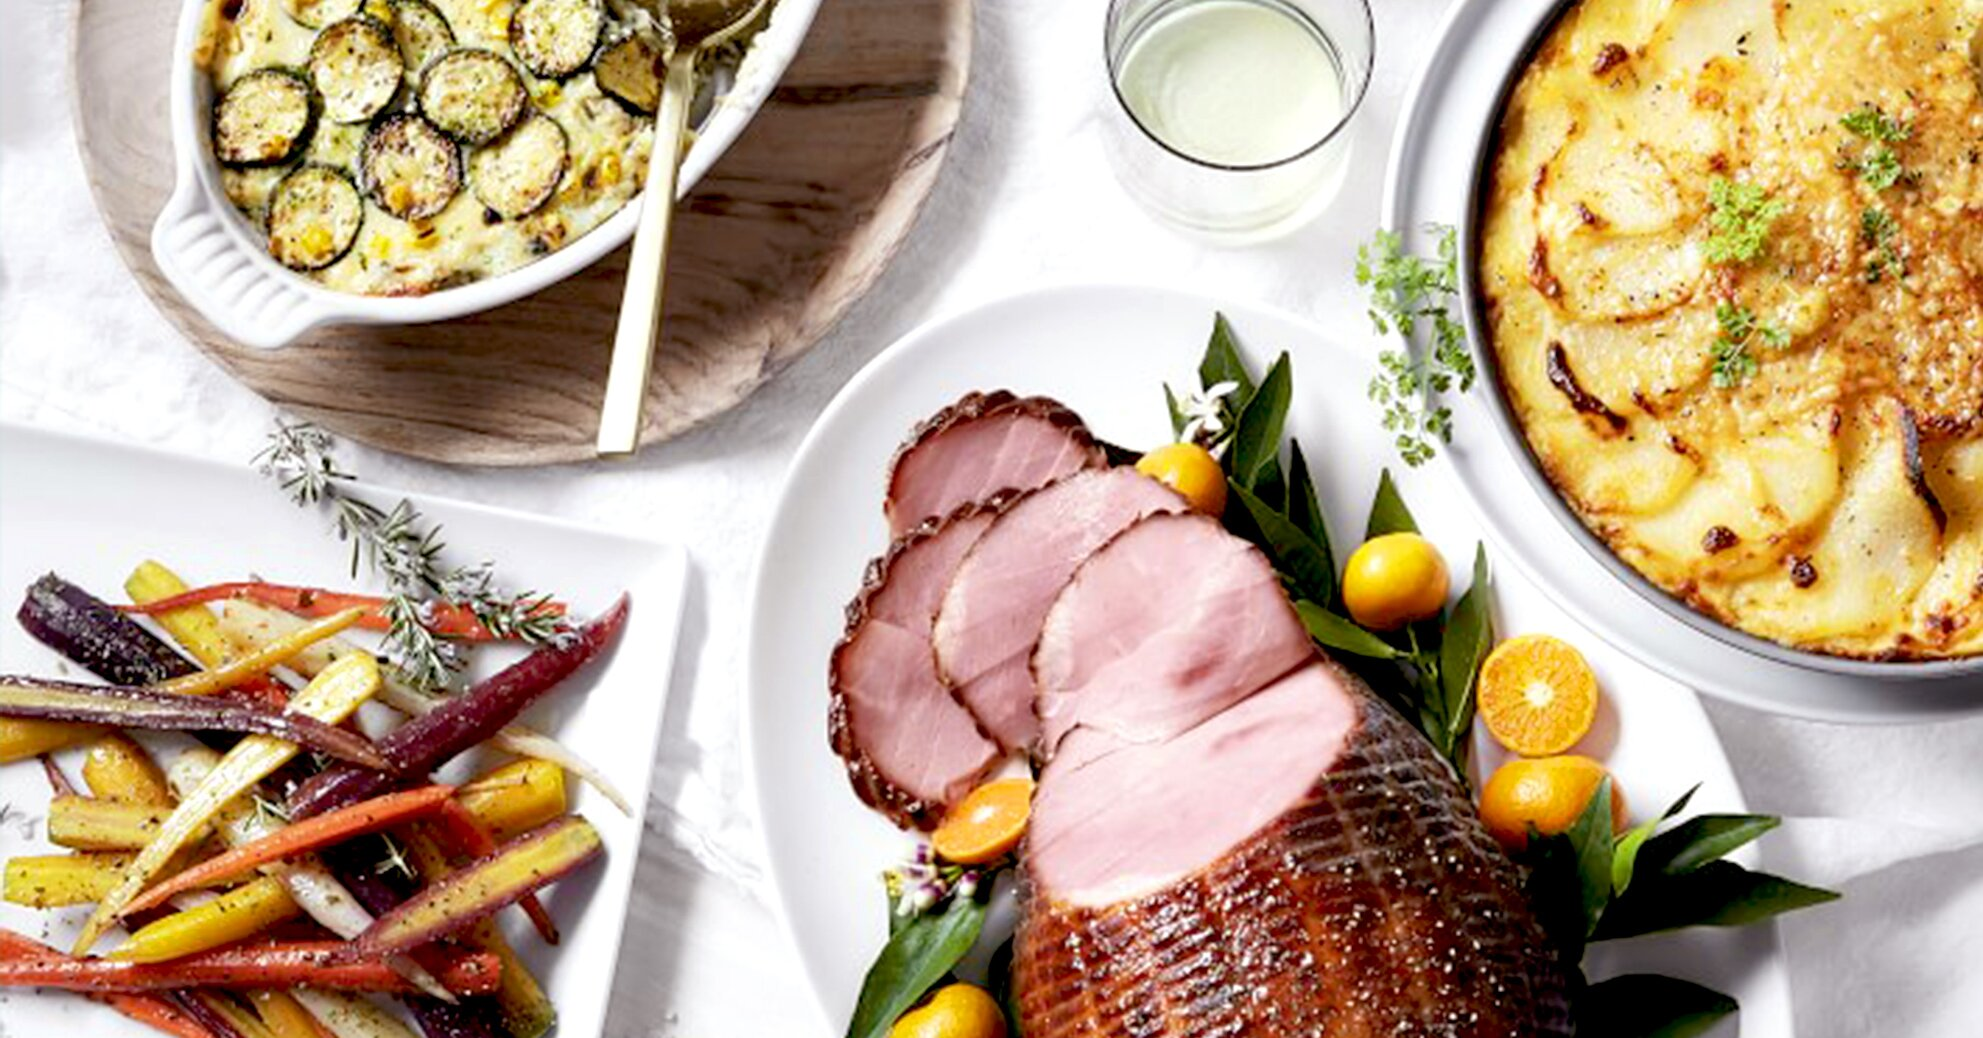 These 5 Retailers Will Deliver a Full Easter Dinner Right to Your Door